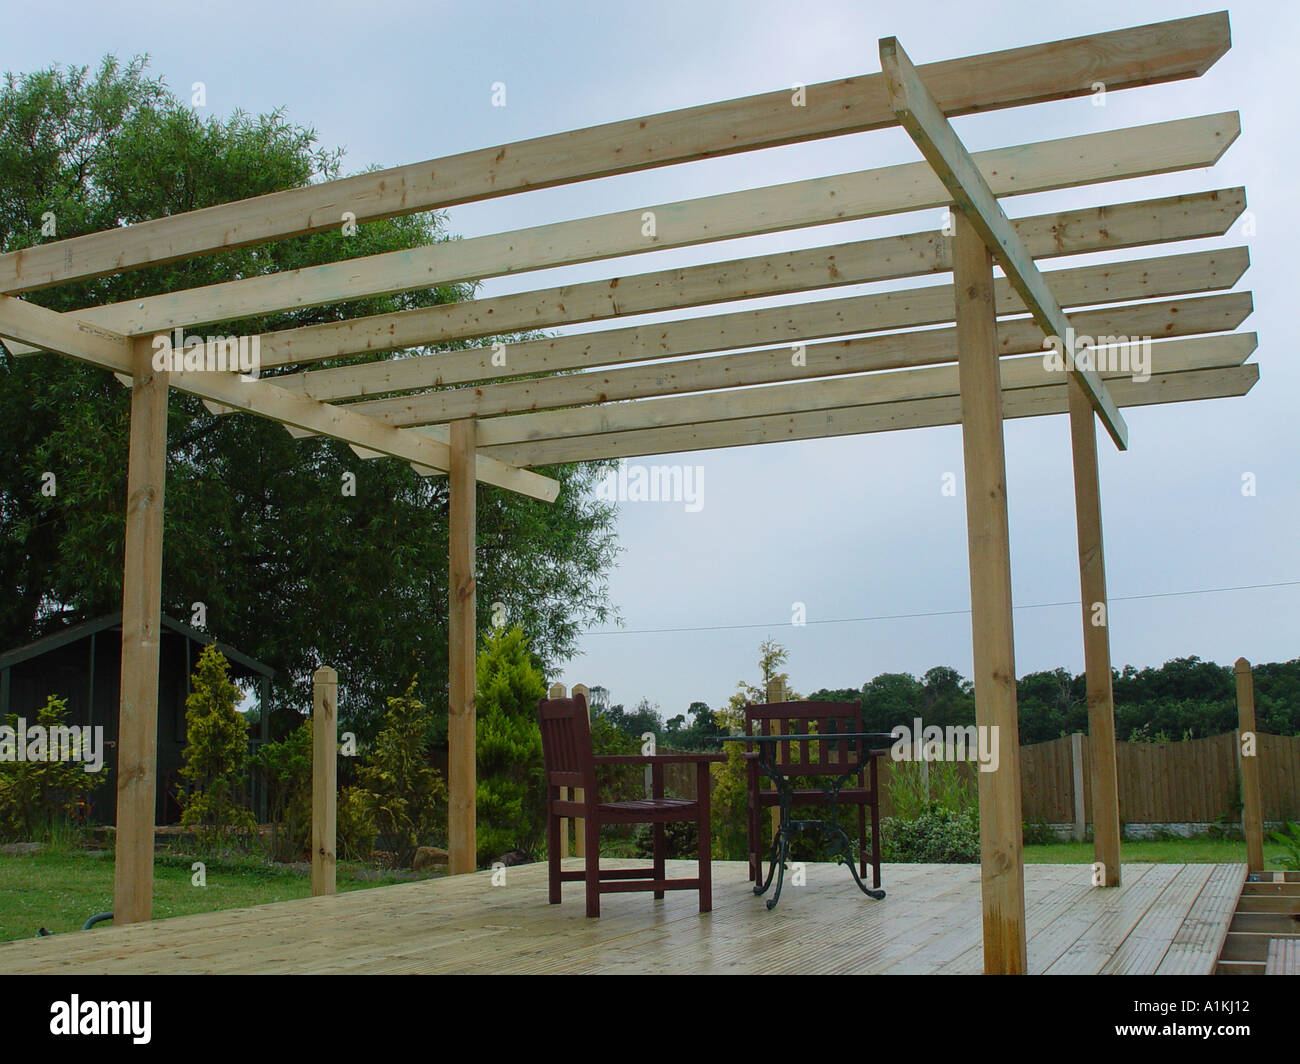 Pergola over garden patio deck the decking and pergola are constructed from  tanalised timber for long - Patio Timber Deck Pergola Stock Photos & Patio Timber Deck Pergola